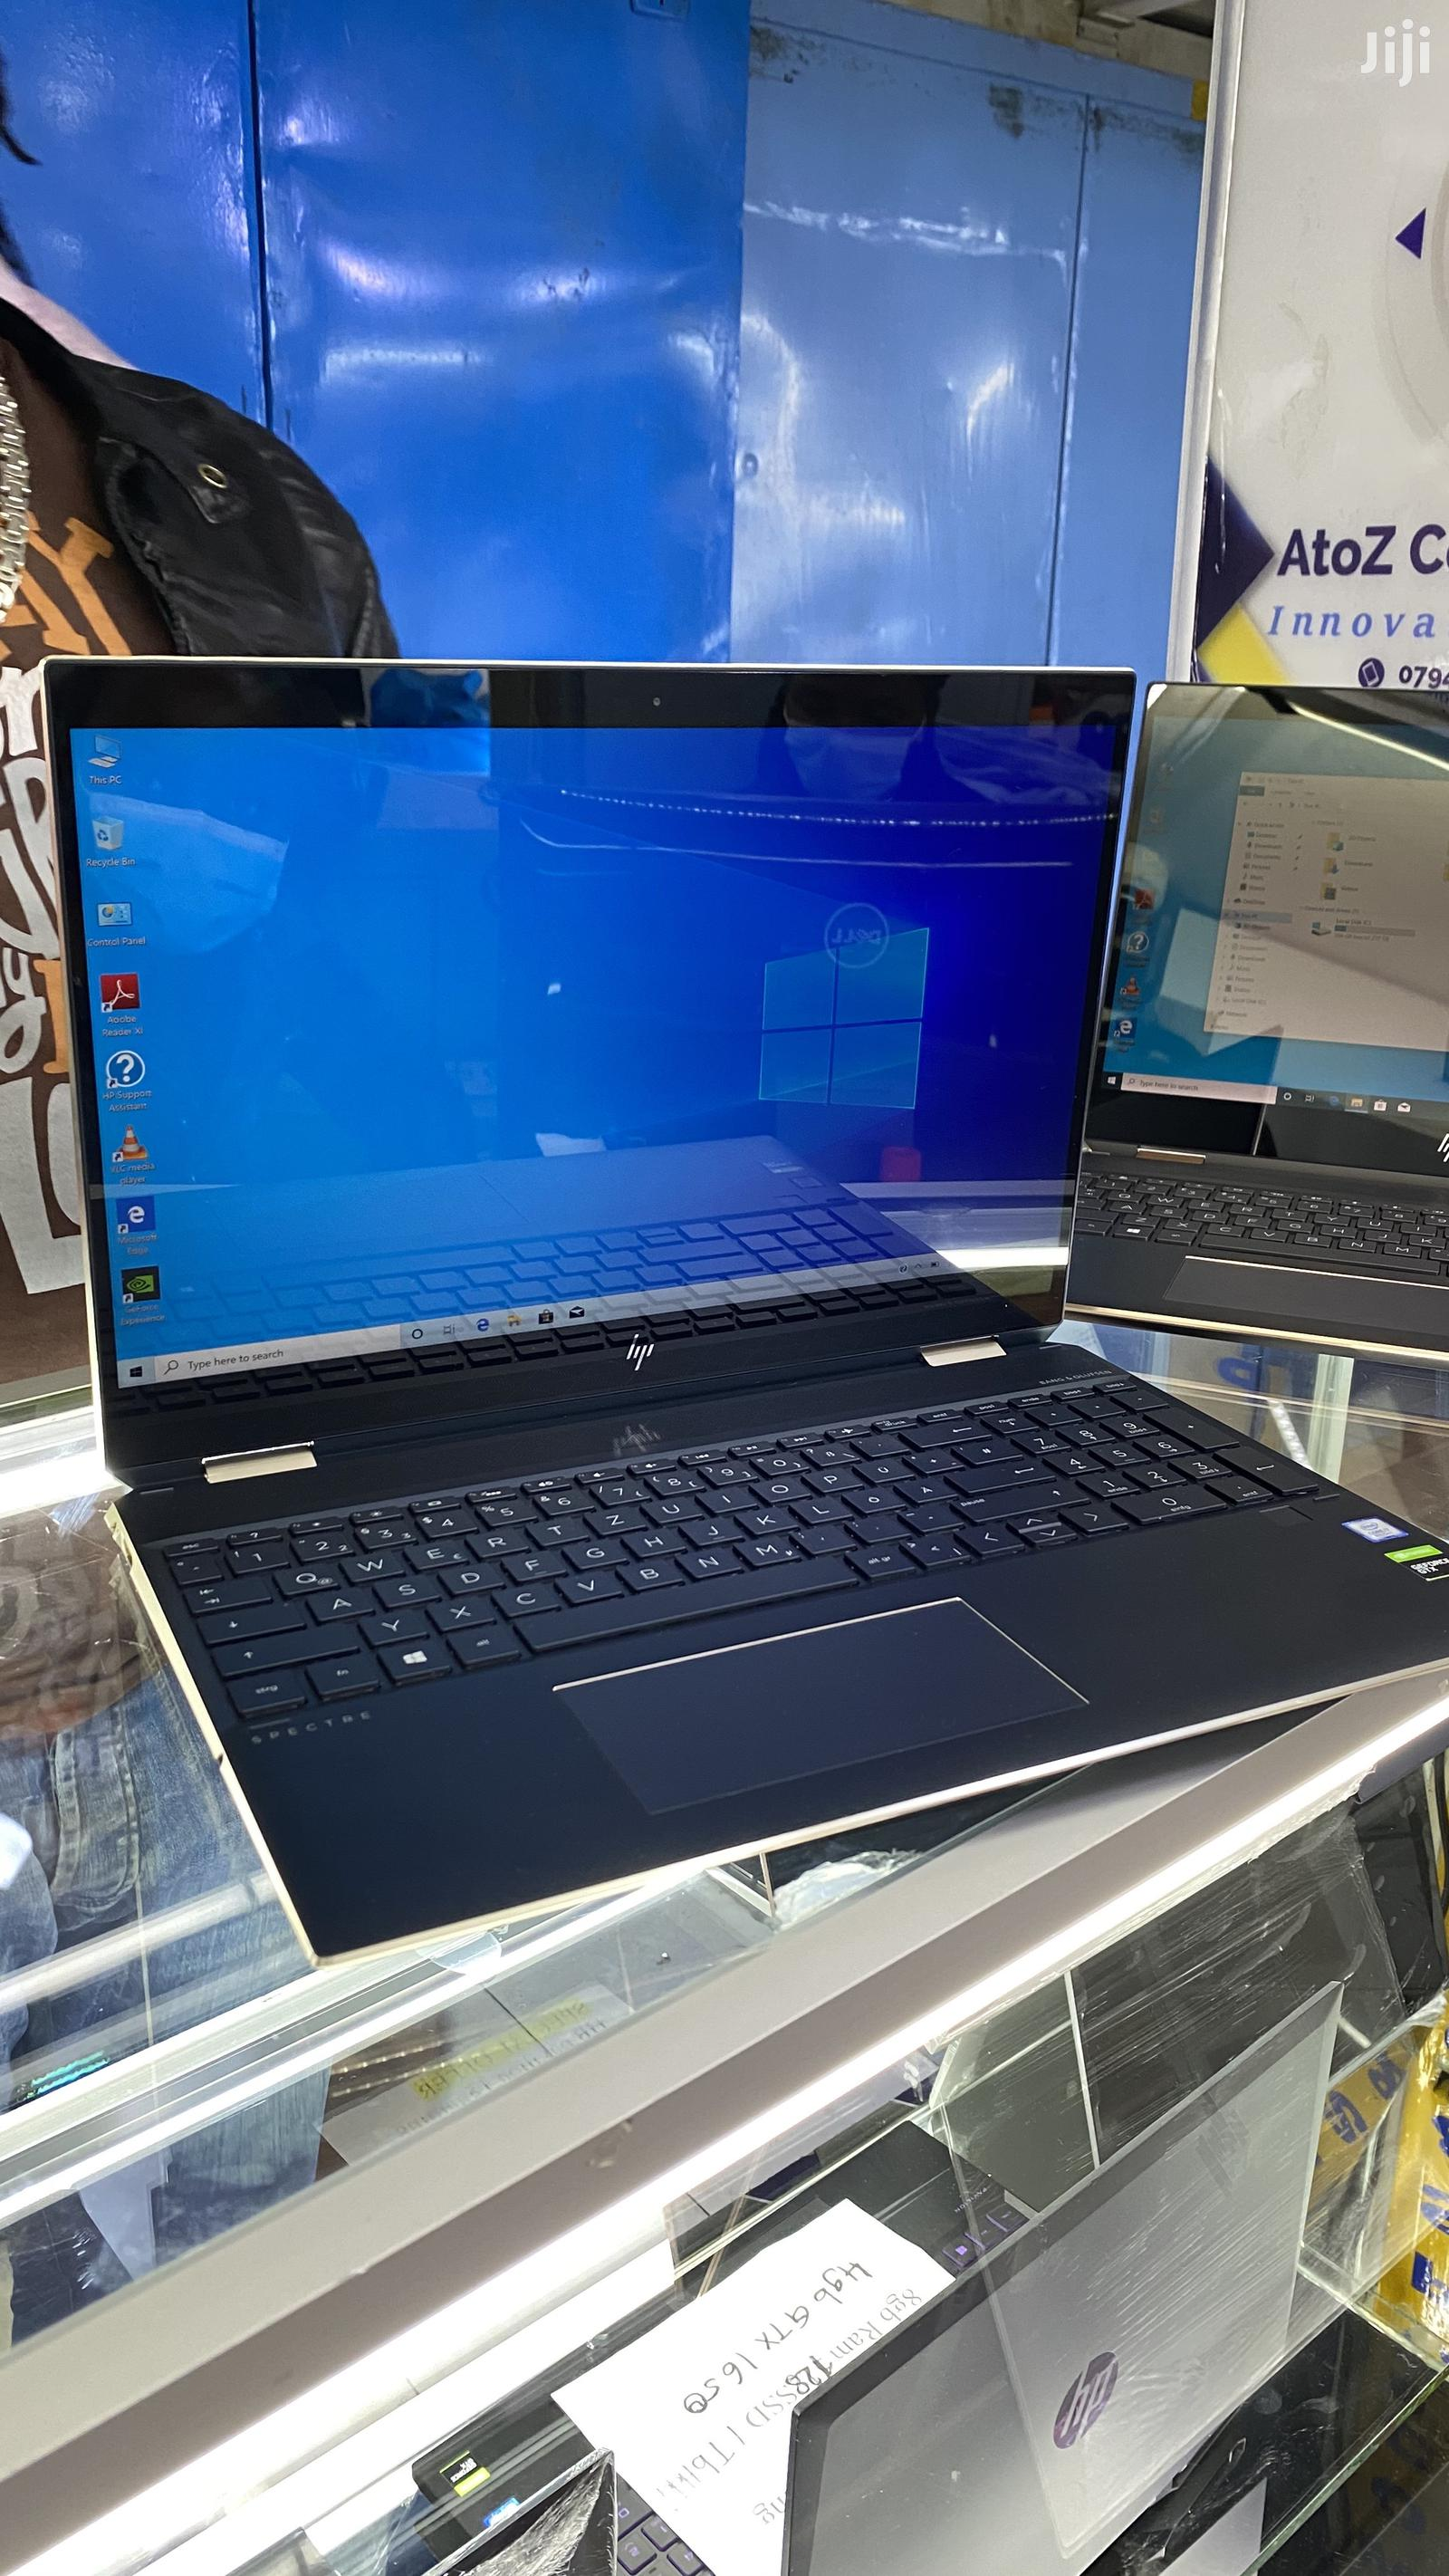 New Laptop HP Spectre X360 15 16GB Intel Core i7 SSD 256GB | Laptops & Computers for sale in Nairobi Central, Nairobi, Kenya